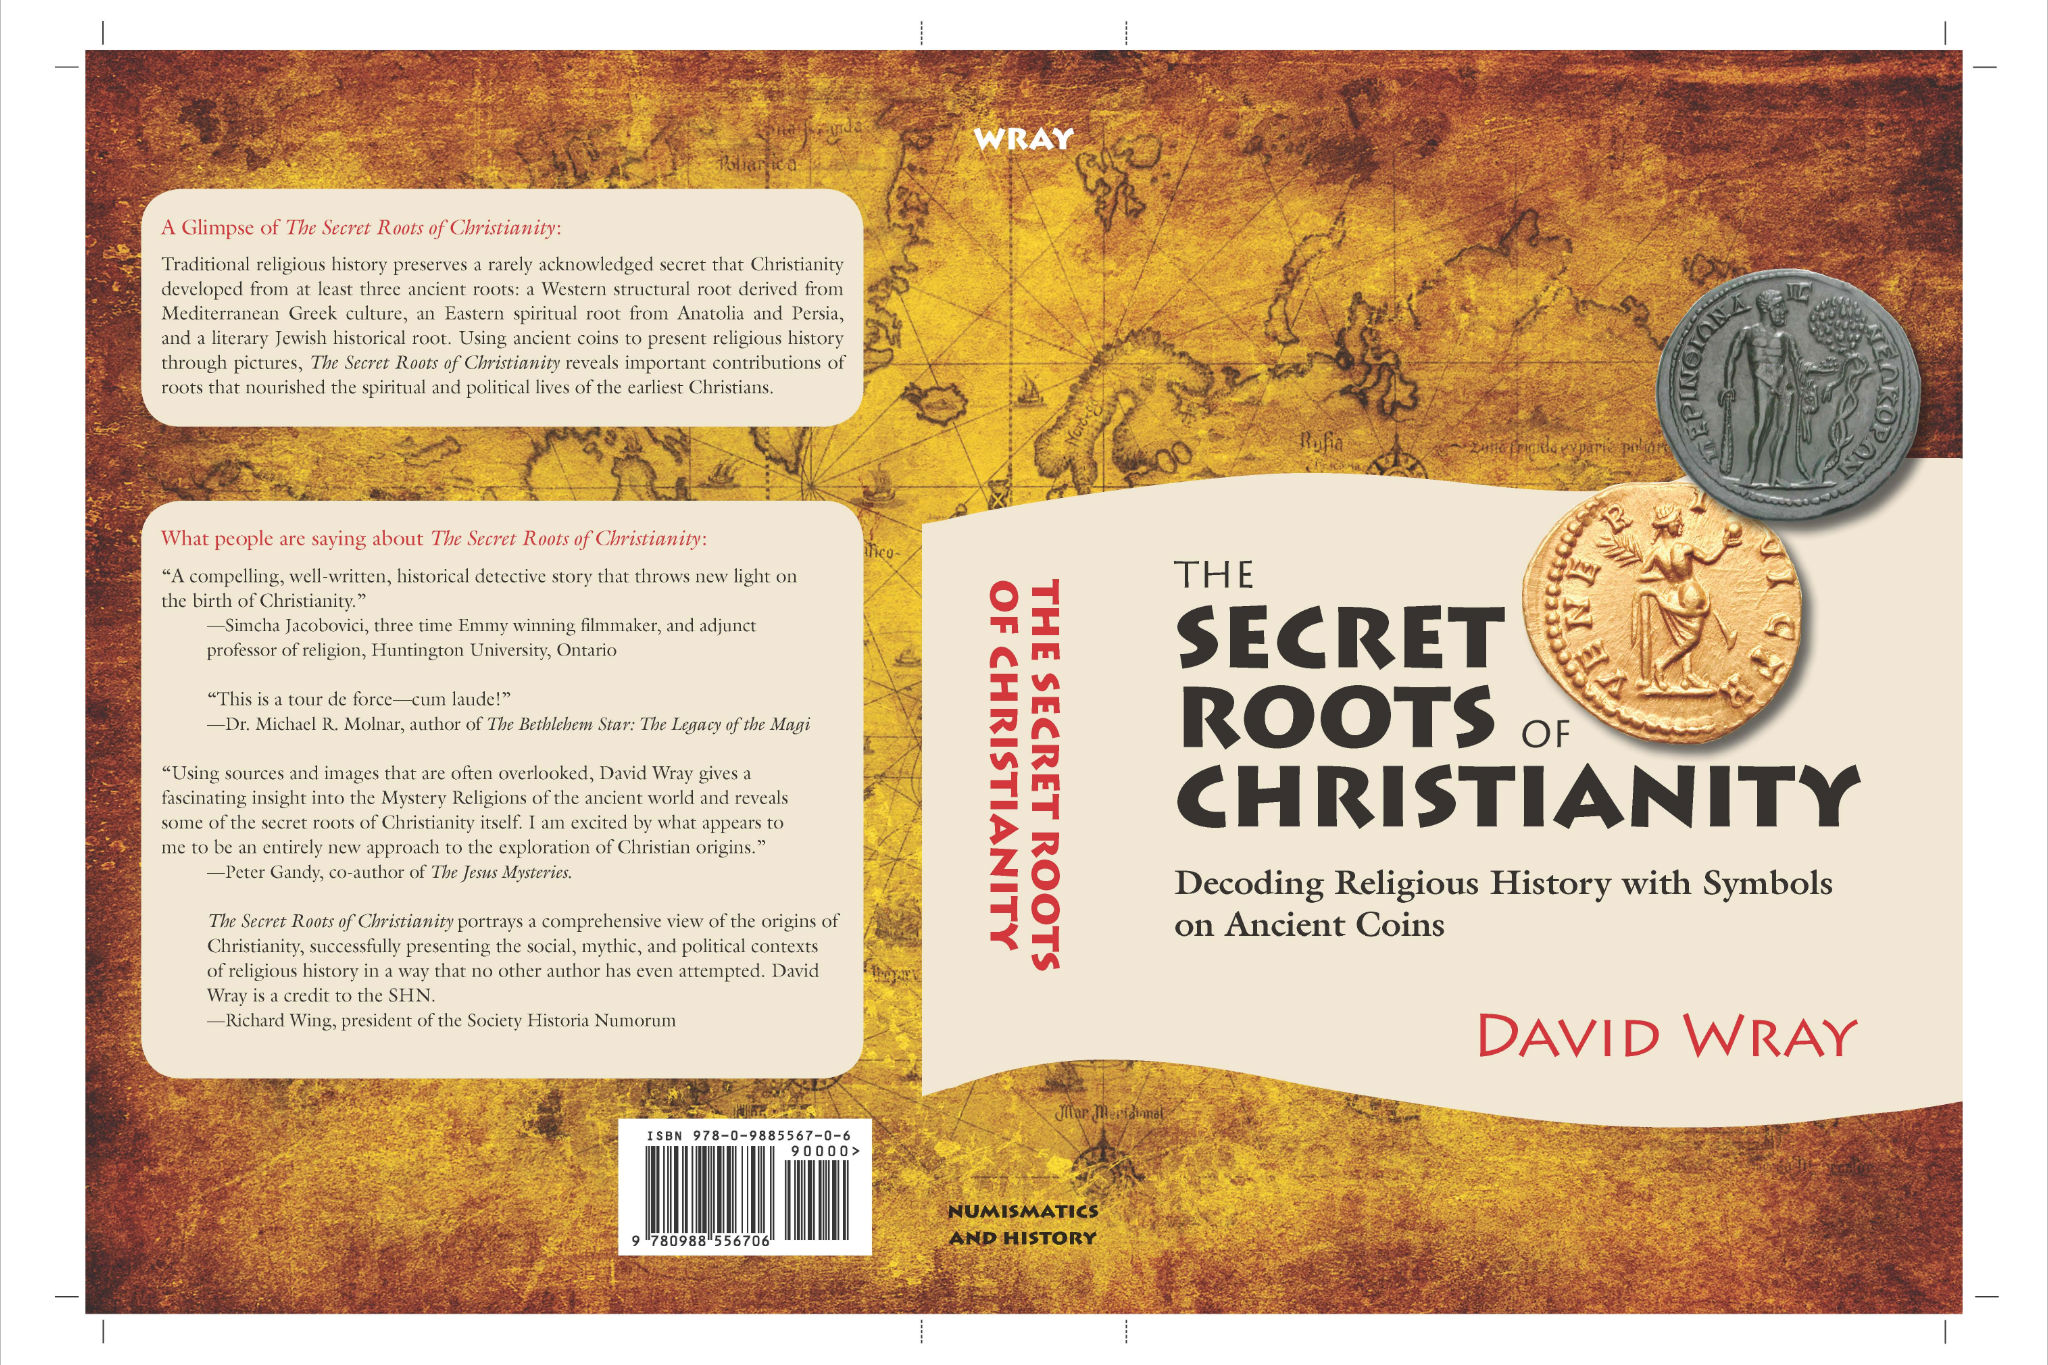 The Secret Roots Of Christianity Decoding Religious History With